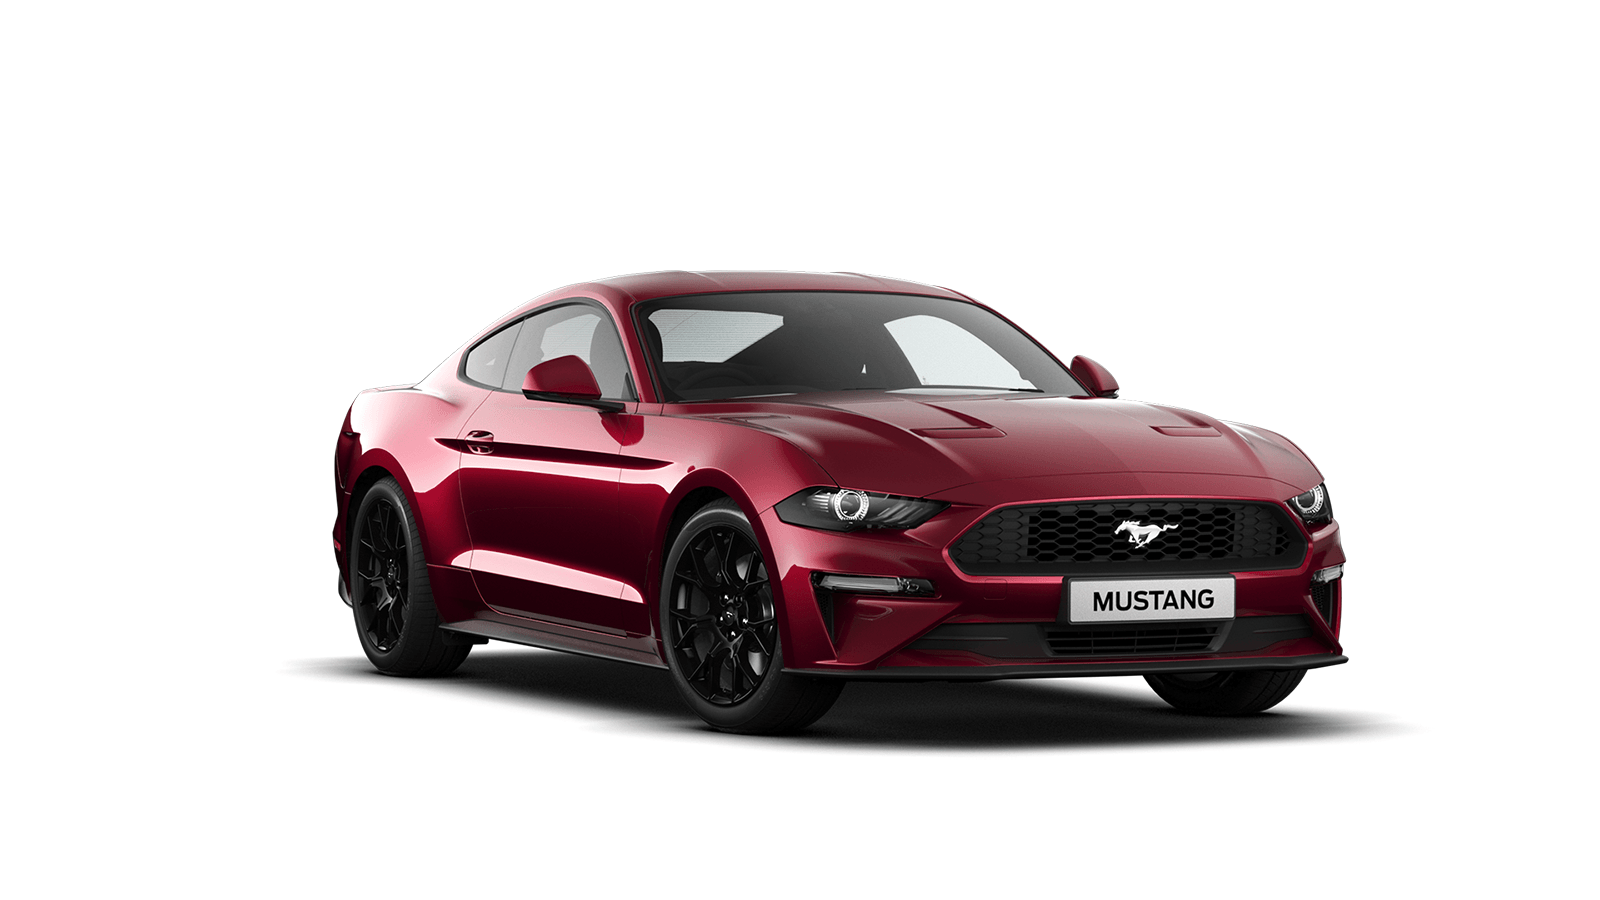 https://www.dealerinternet.co.uk/images/MUSTANG/2019/Fastback/2.3EcoBoost/RUBY-RED.png